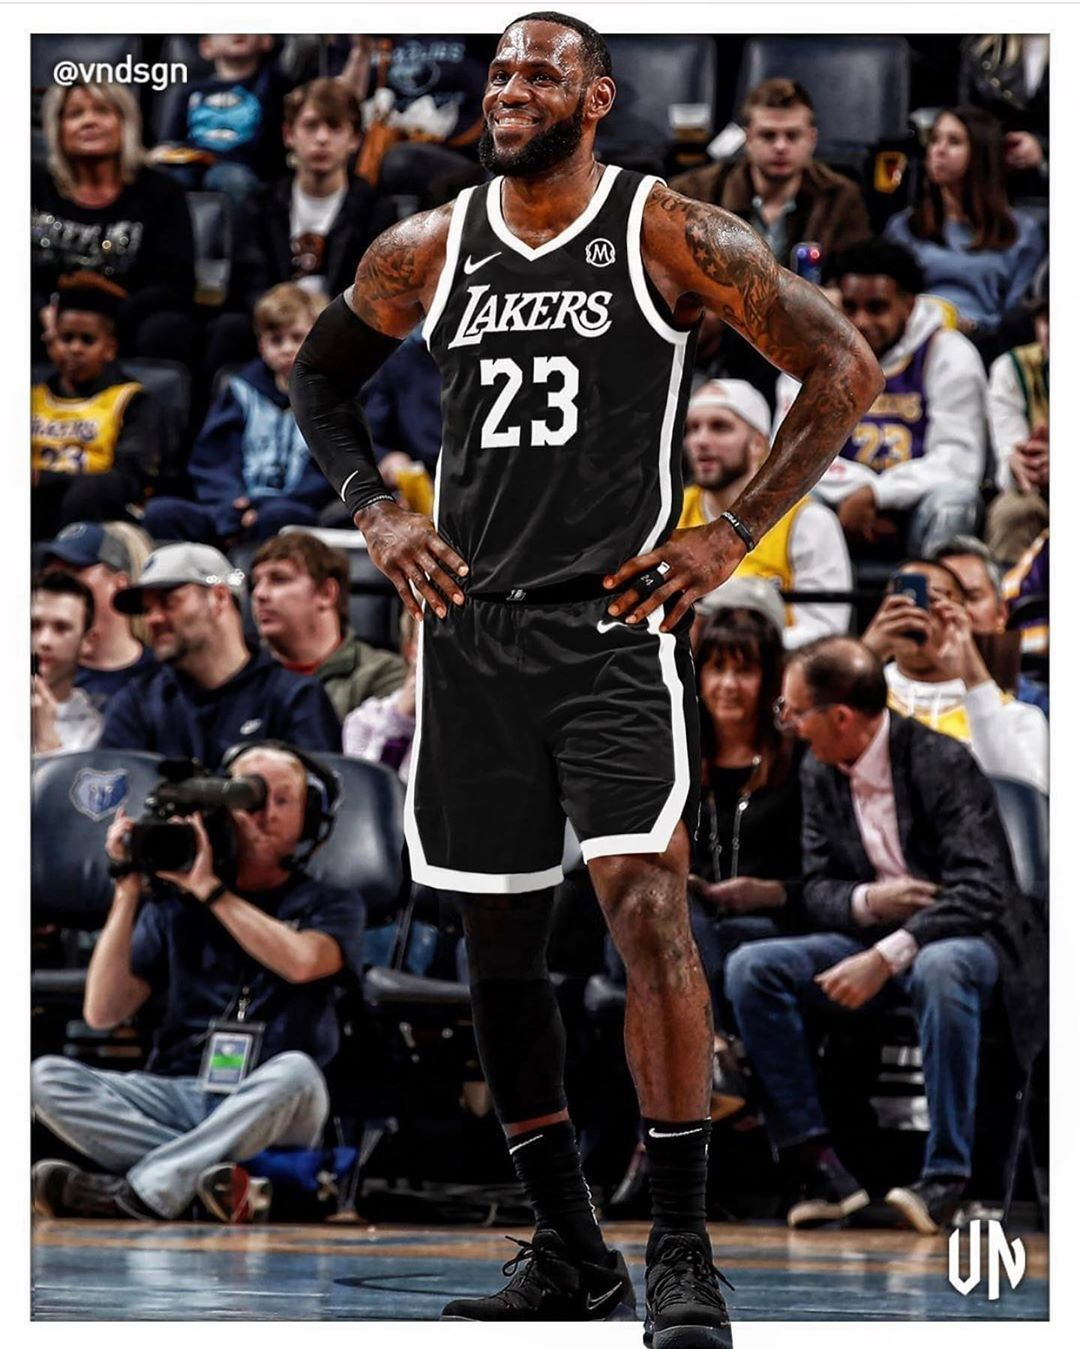 LeBron James in the 'Mamba Sports Academy' jersey